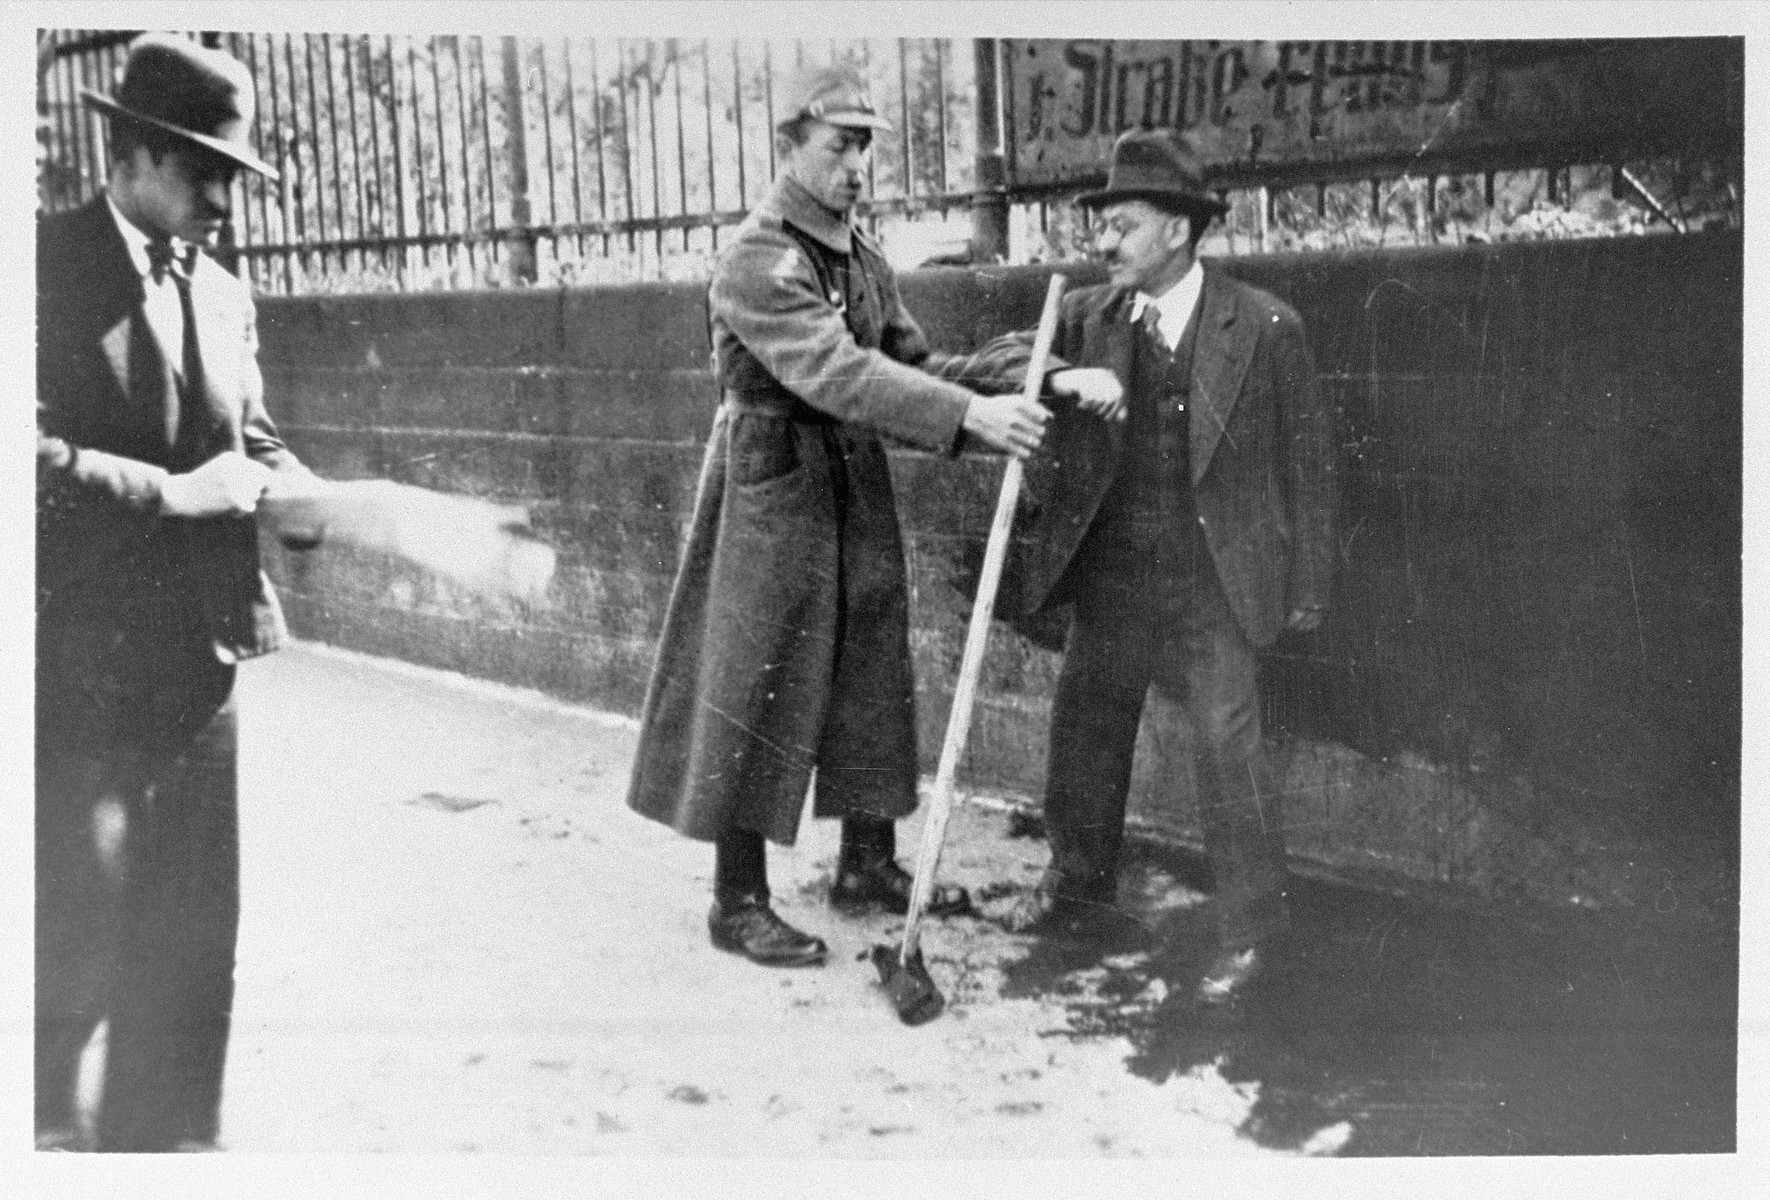 A Nazi forces a German Jew to take a broom and sweep the pavement.  During the sporadic wave of attacks on the Jewish-owned shops in Germany during 1938-1939, many Jews were accosted in the streets and subjected to public humiliation through forced labor.  One of the Nazi's favorite acts of forced labor was to compel Jews and other dissidents to sweep city streets and clean walls.